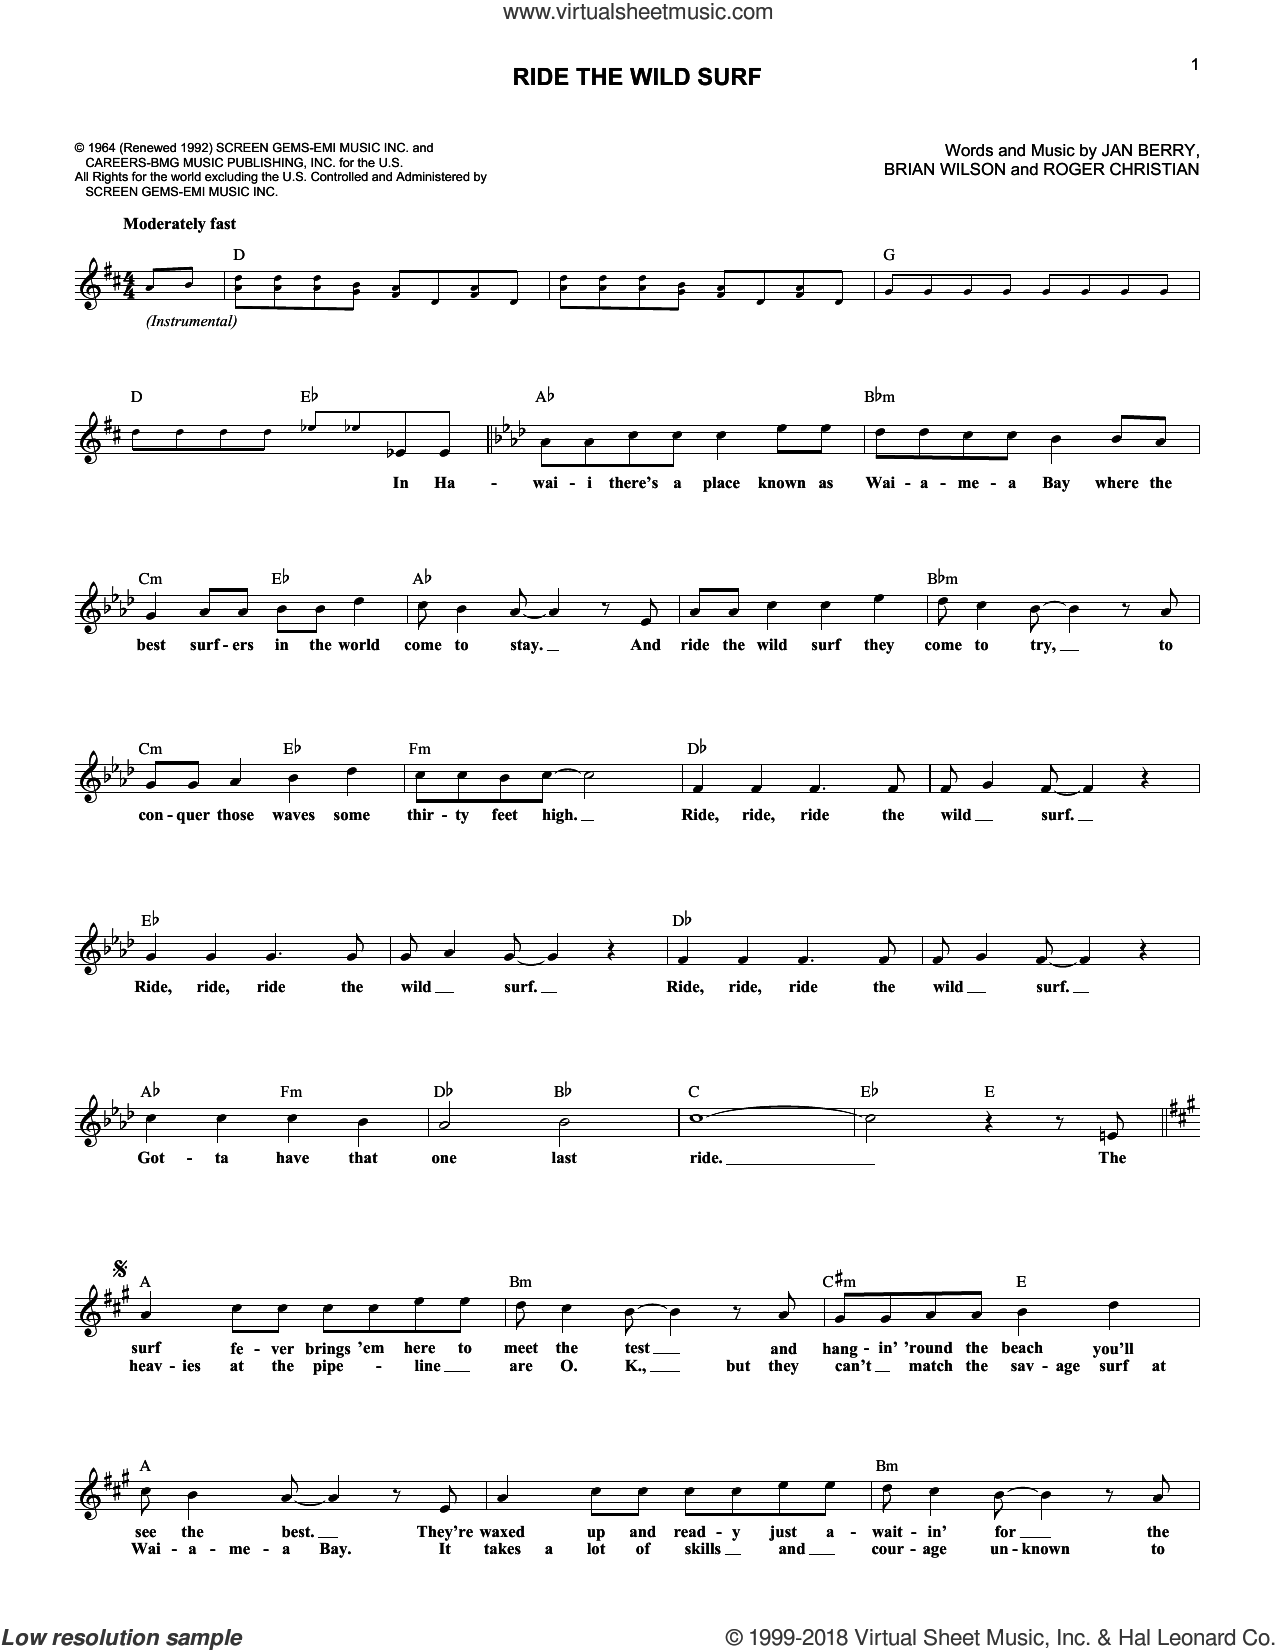 Ride The Wild Surf sheet music for voice and other instruments (fake book) by Jan & Dean, Brian Wilson, Jan Berry and Roger Christian, intermediate skill level